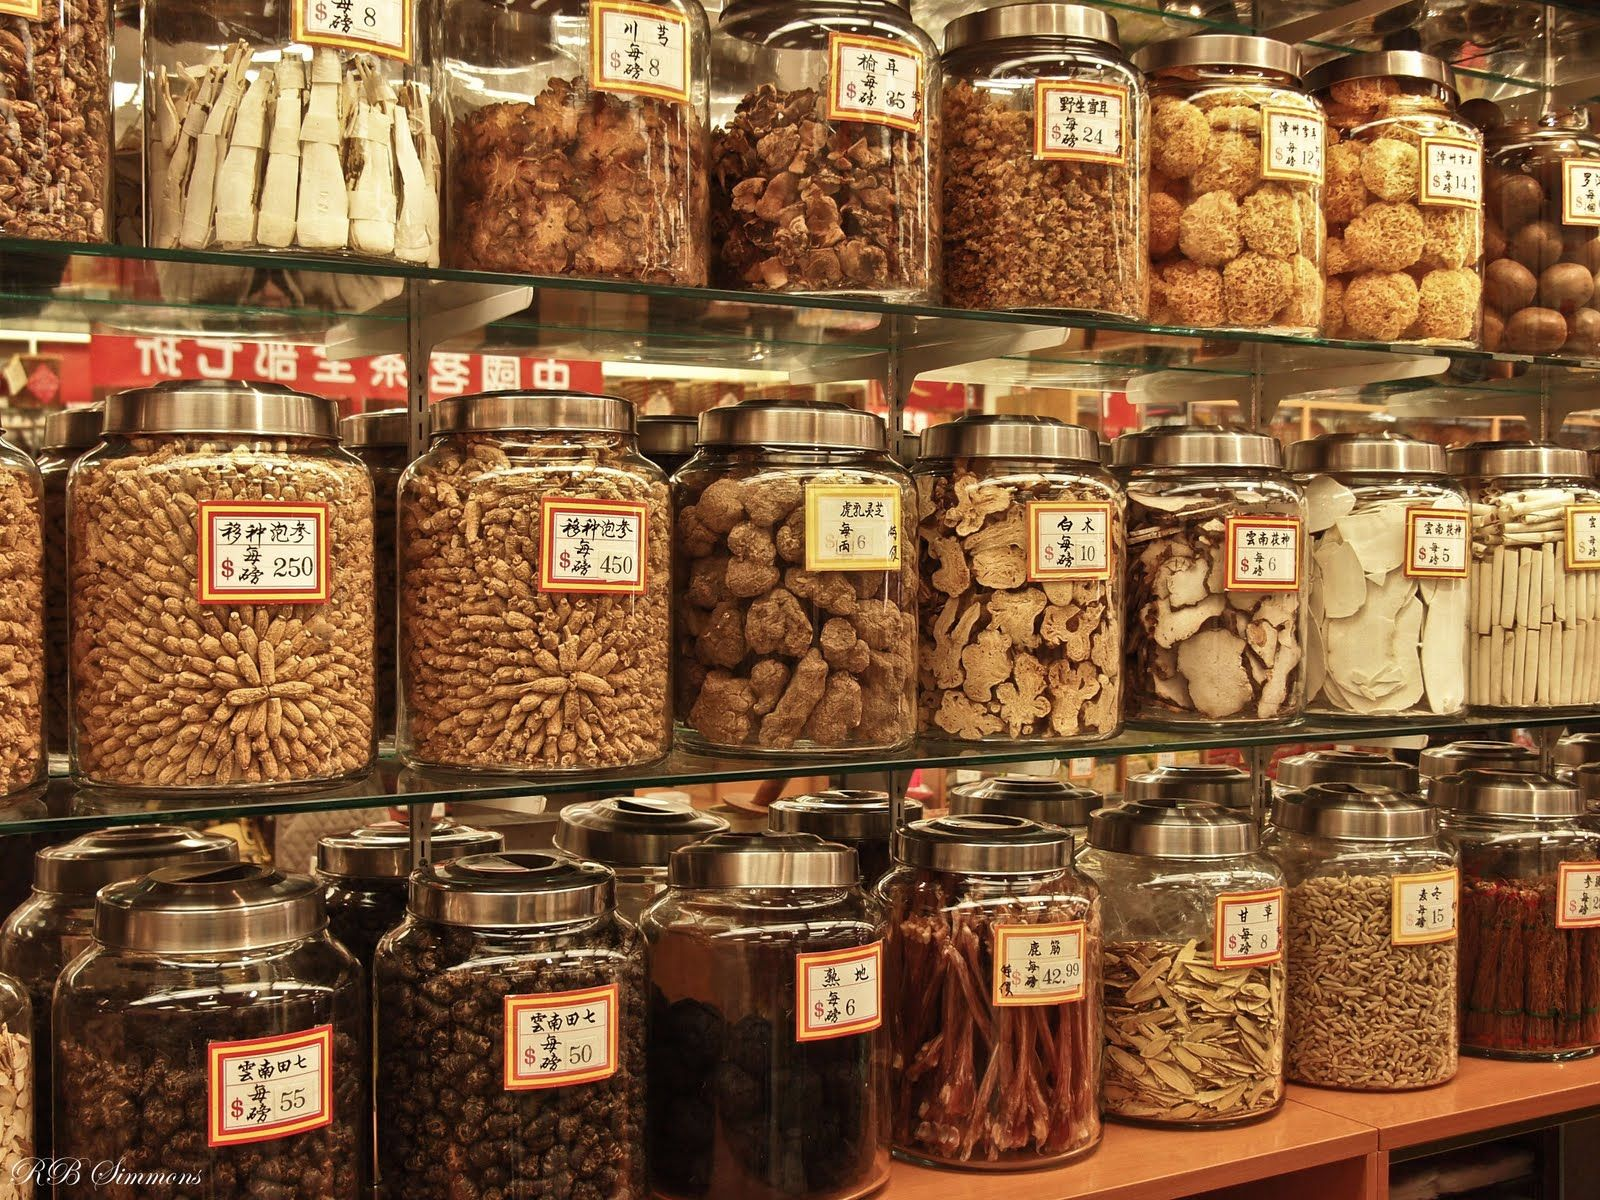 Chinese herbal treatment - Spirituality And The Supernatural In Chinese Medicine Global Connections